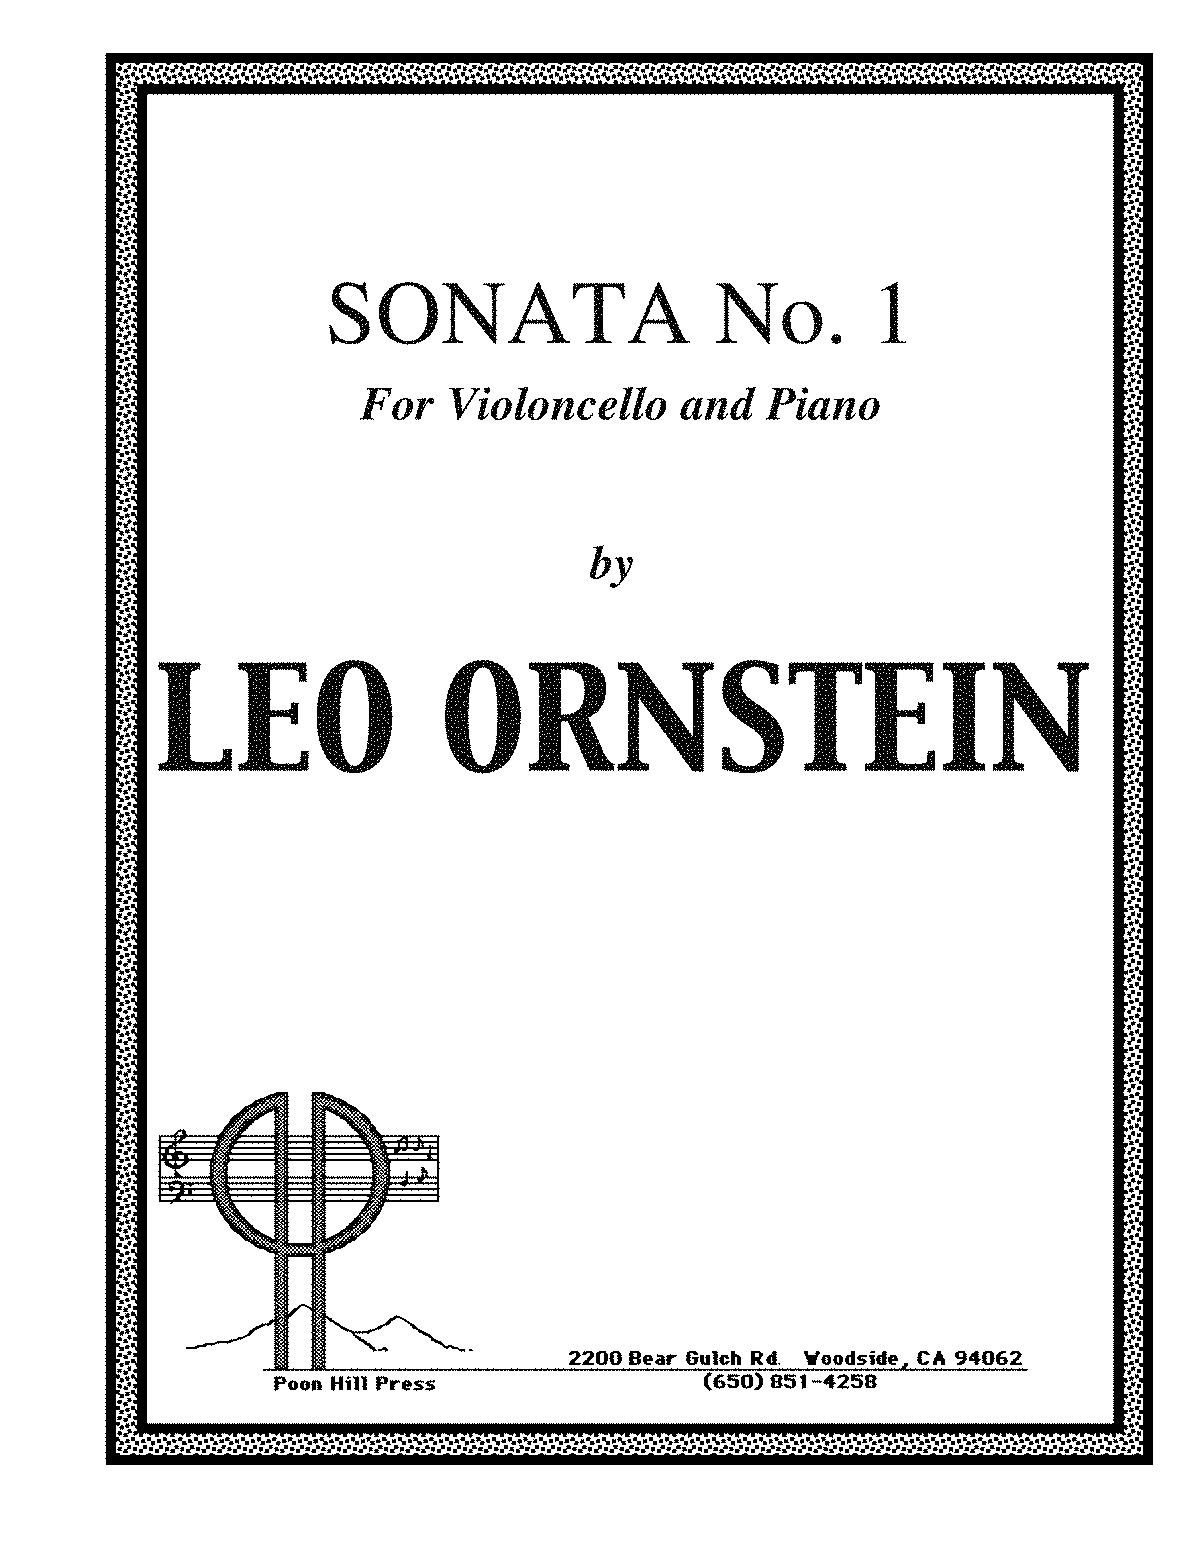 Leo Ornstein - s612 - Cello Sonata No 1 - Score Part.pdf